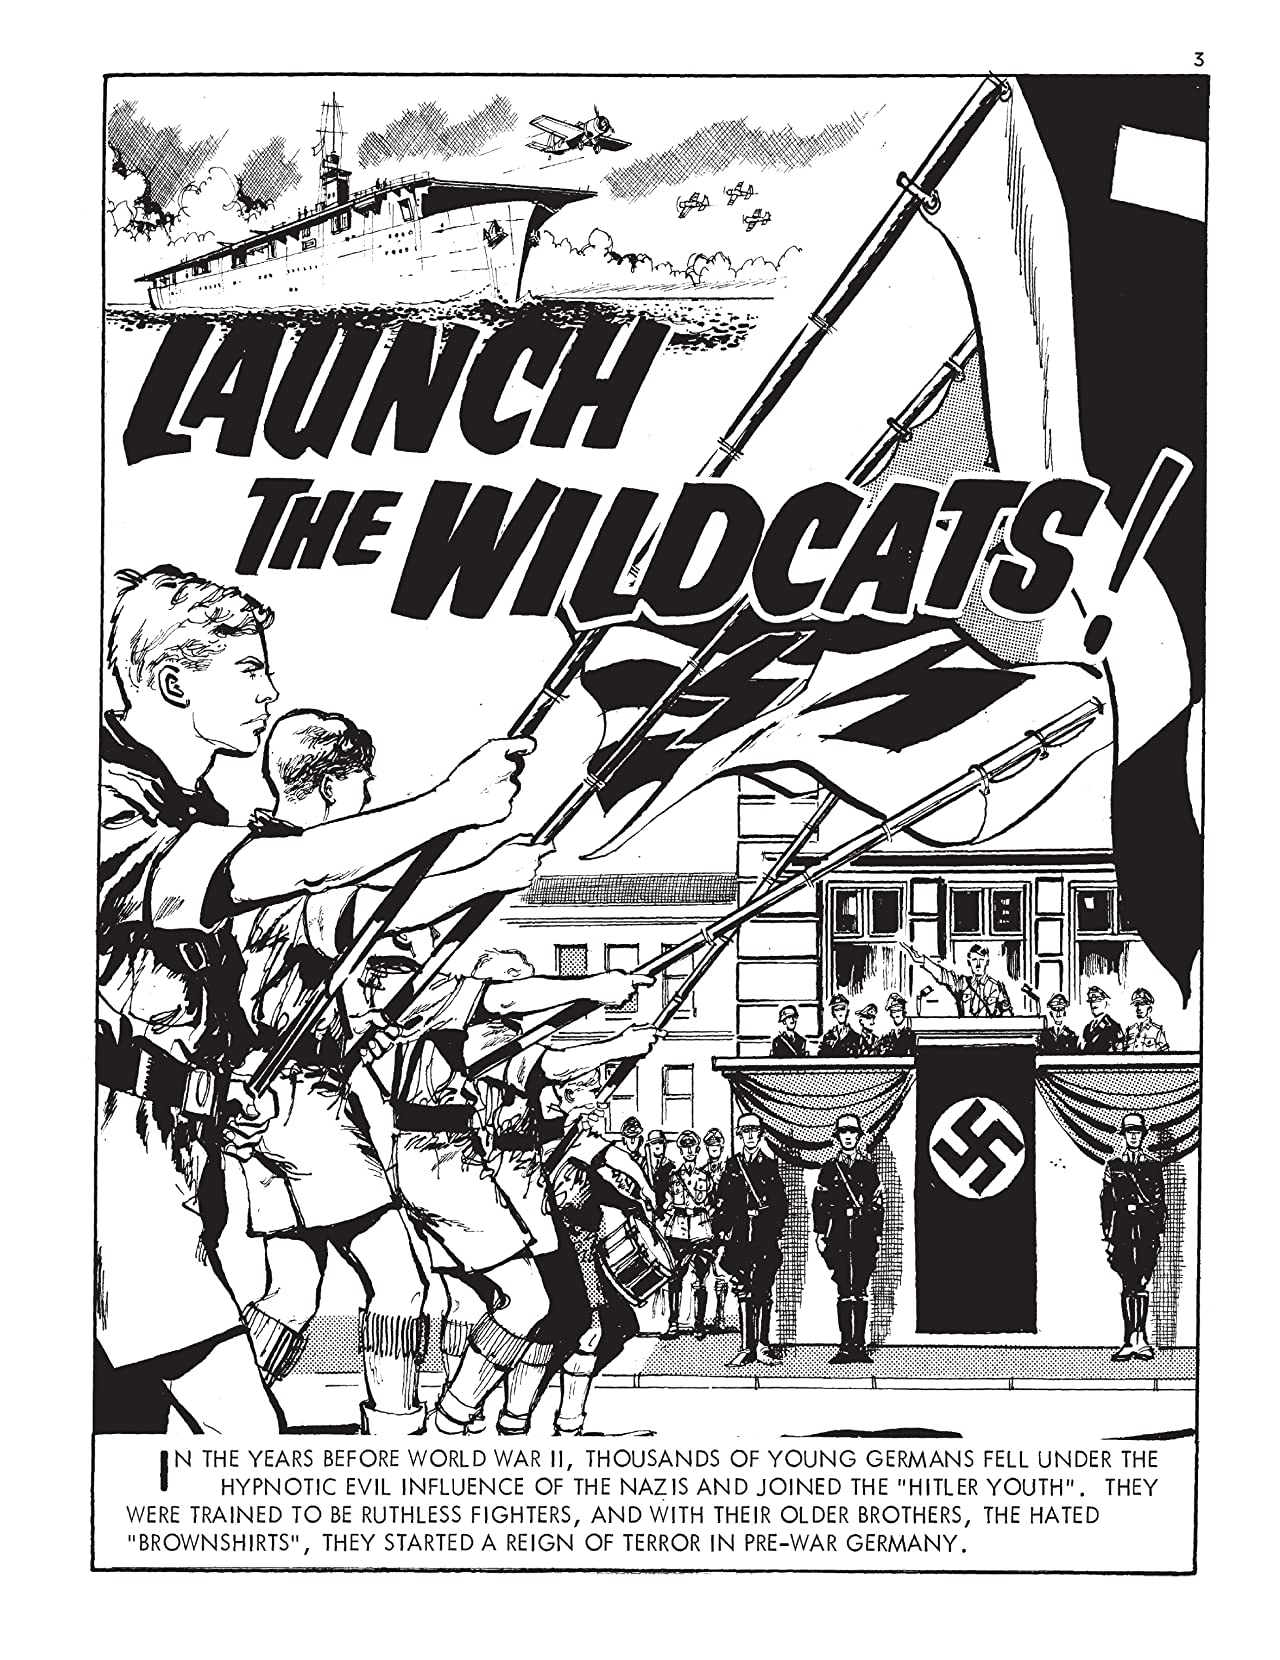 Commando #5012: Launch The Wildcats!